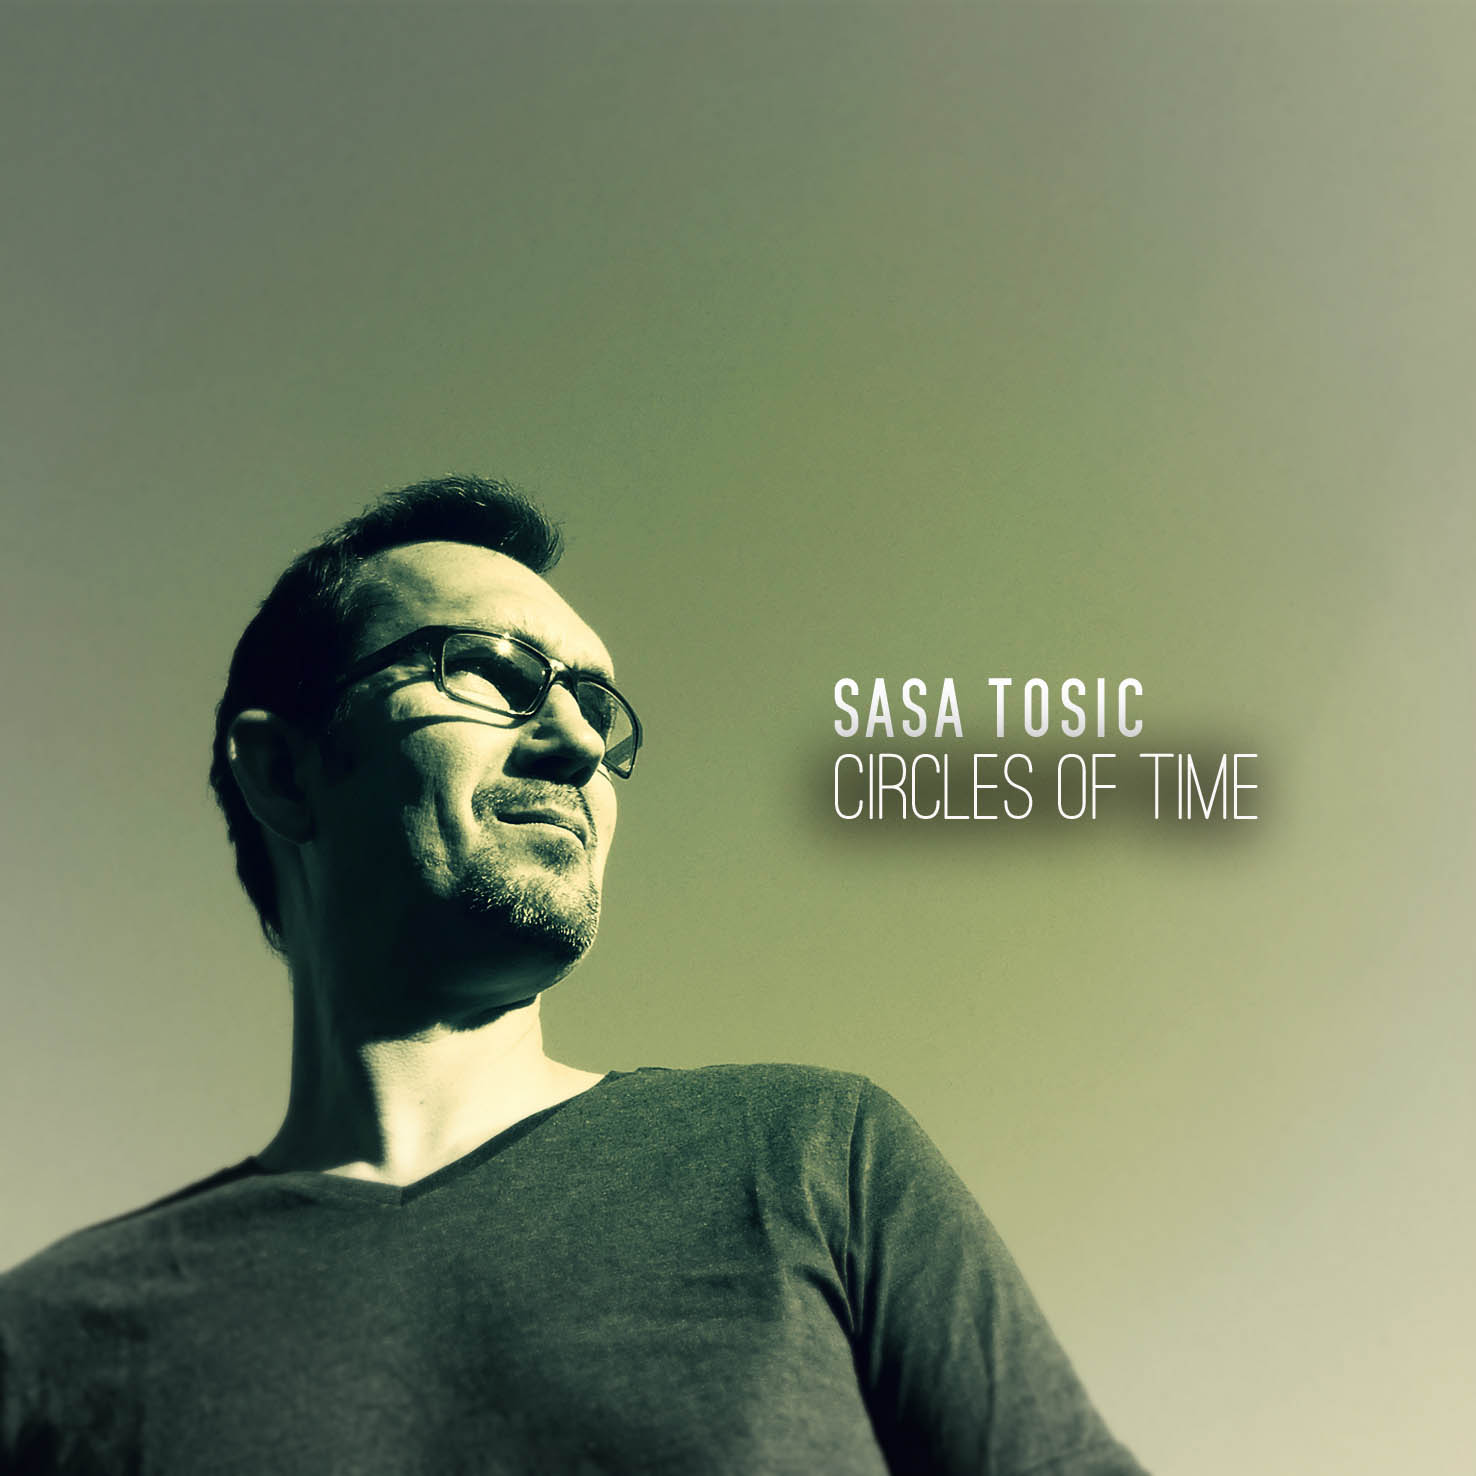 Premier-CD from Sasa Tosic